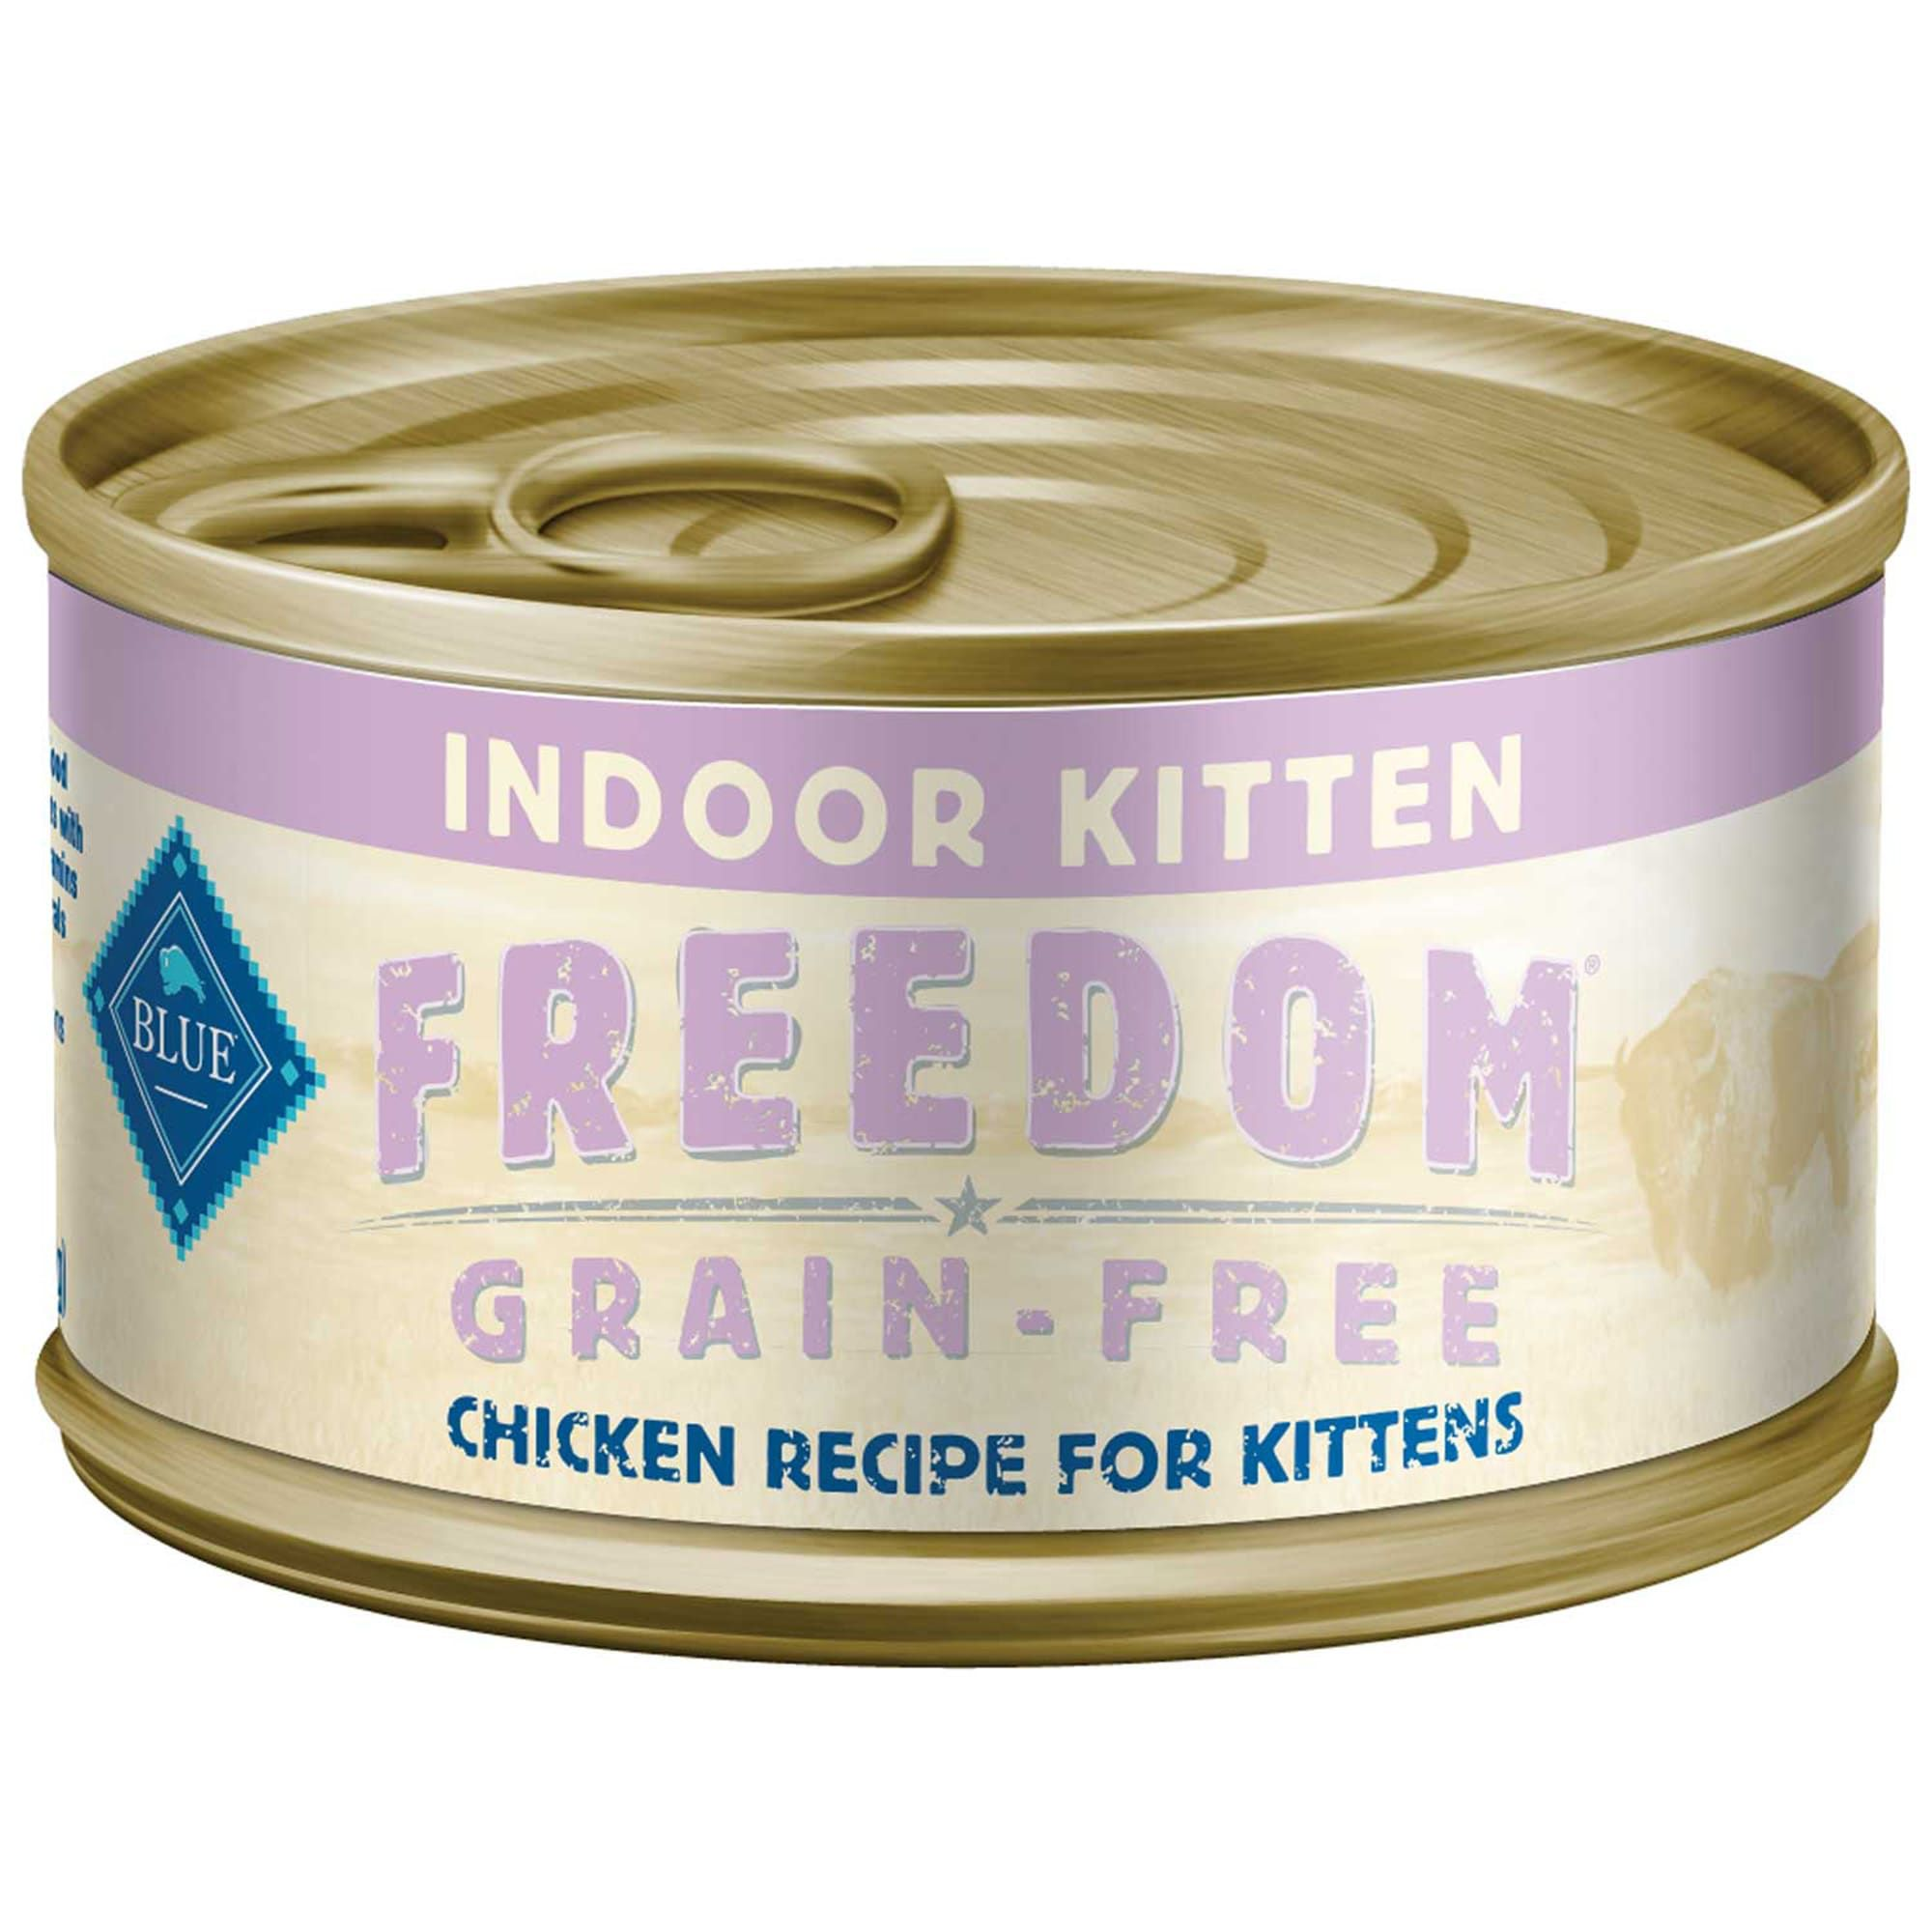 Blue Buffalo Wilderness High Protein Dry Kitten Food Want To Know More Visit The Site Now Cat Food Kitten Food Dry Cat Food Cat Pet Supplies